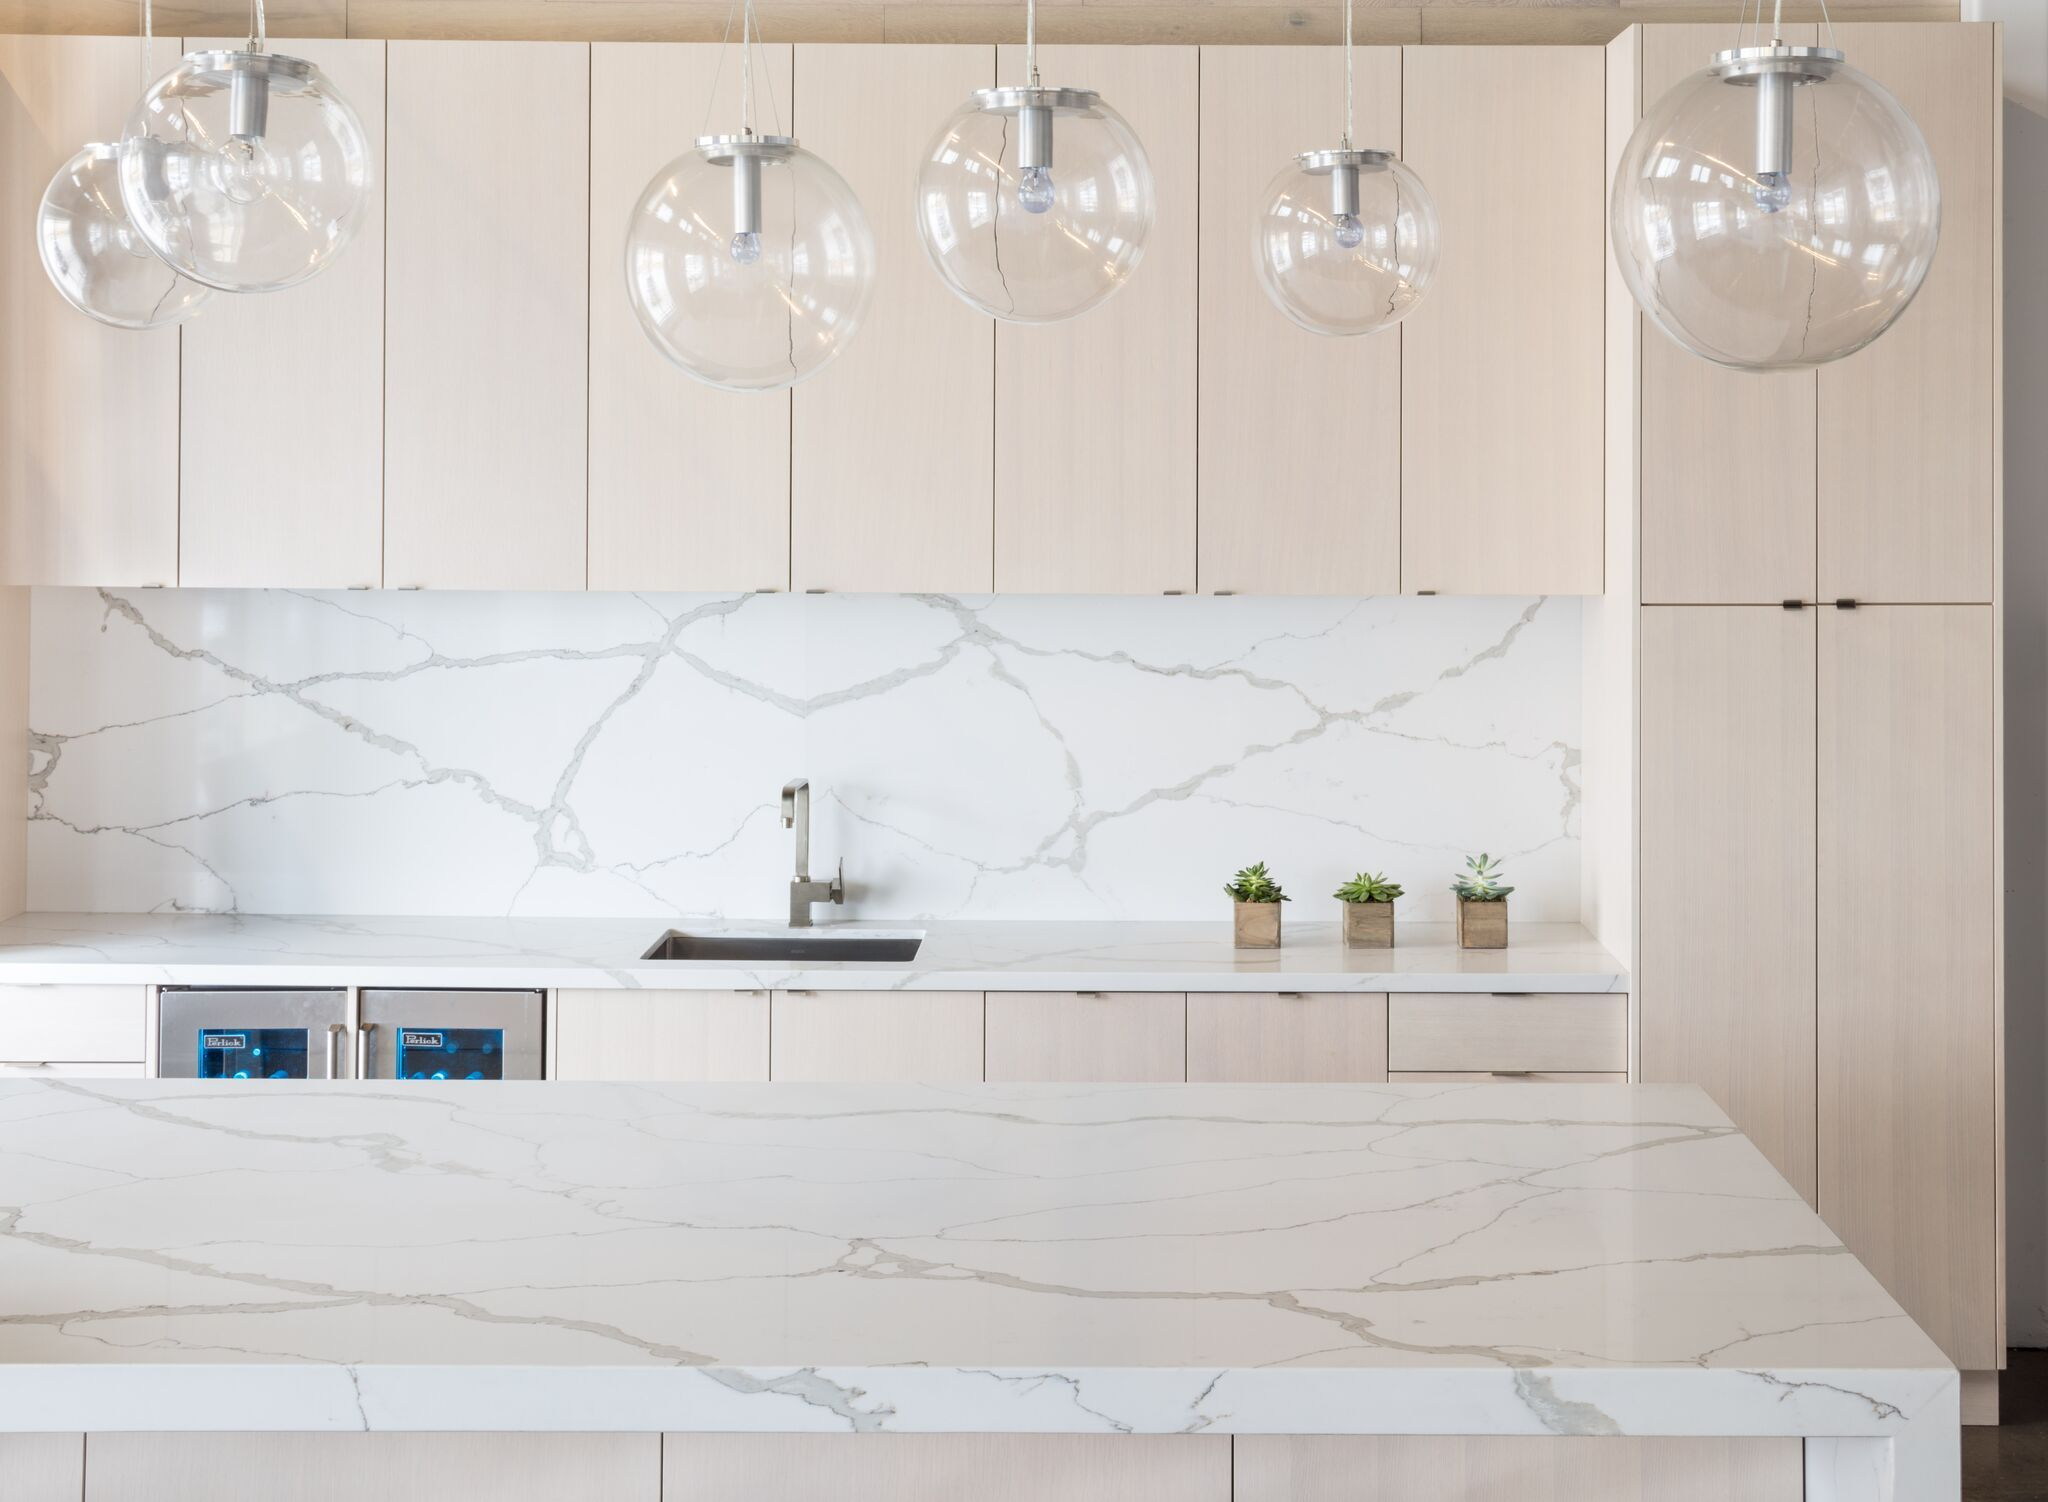 4100 Calacatta Vogue | Calacatta, Countertop and Kitchen design